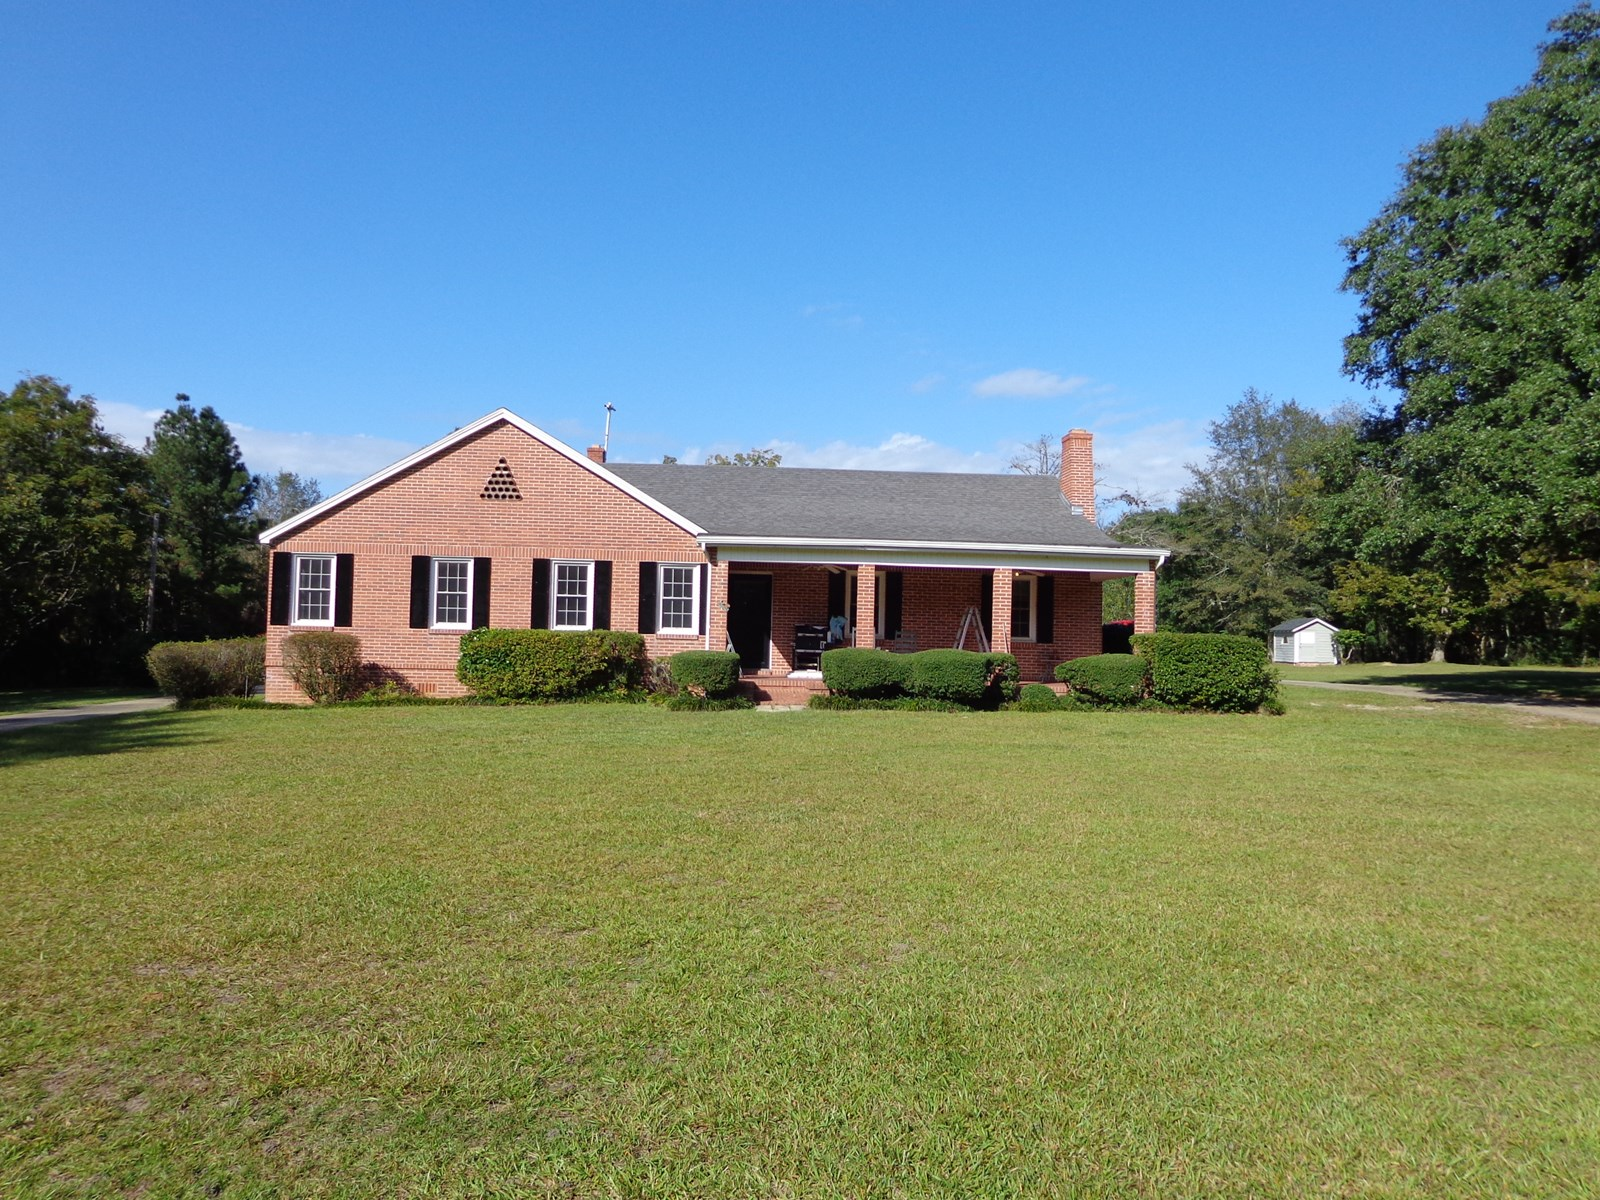 Four Bedroom Brick Home for Sale in Sylvania, GA